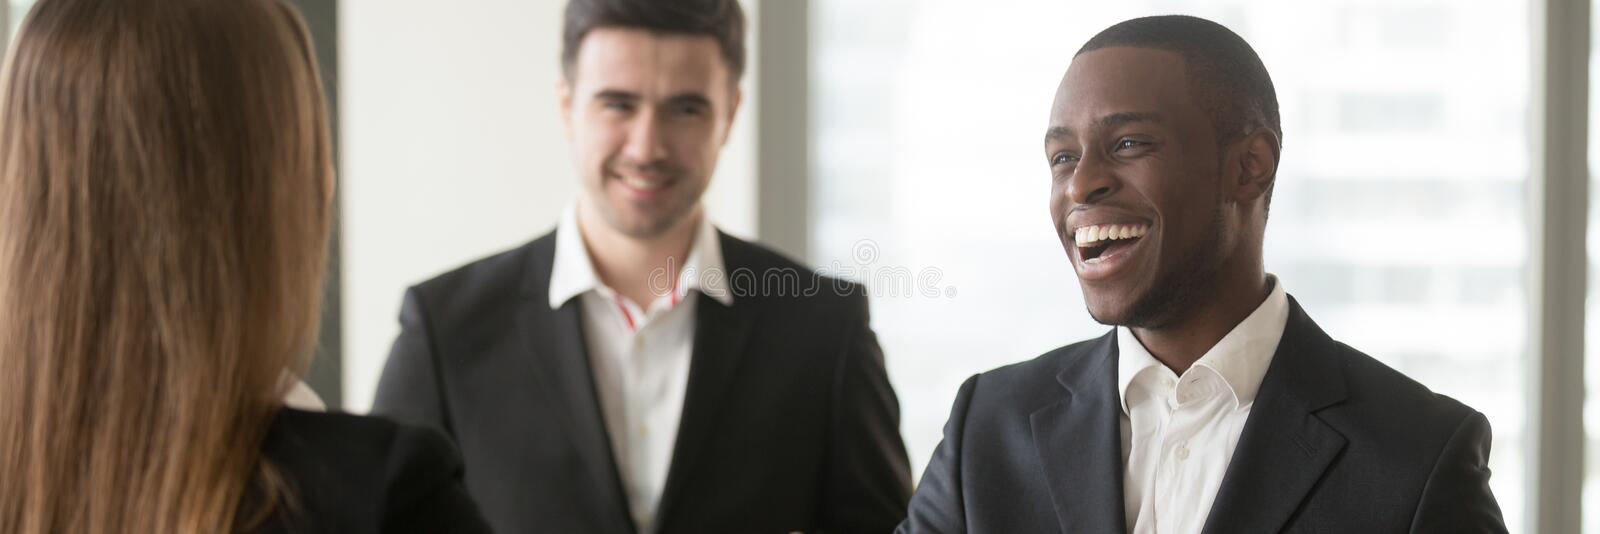 Horizontal image diverse multiracial businesspeople acquainted meet at office stock images